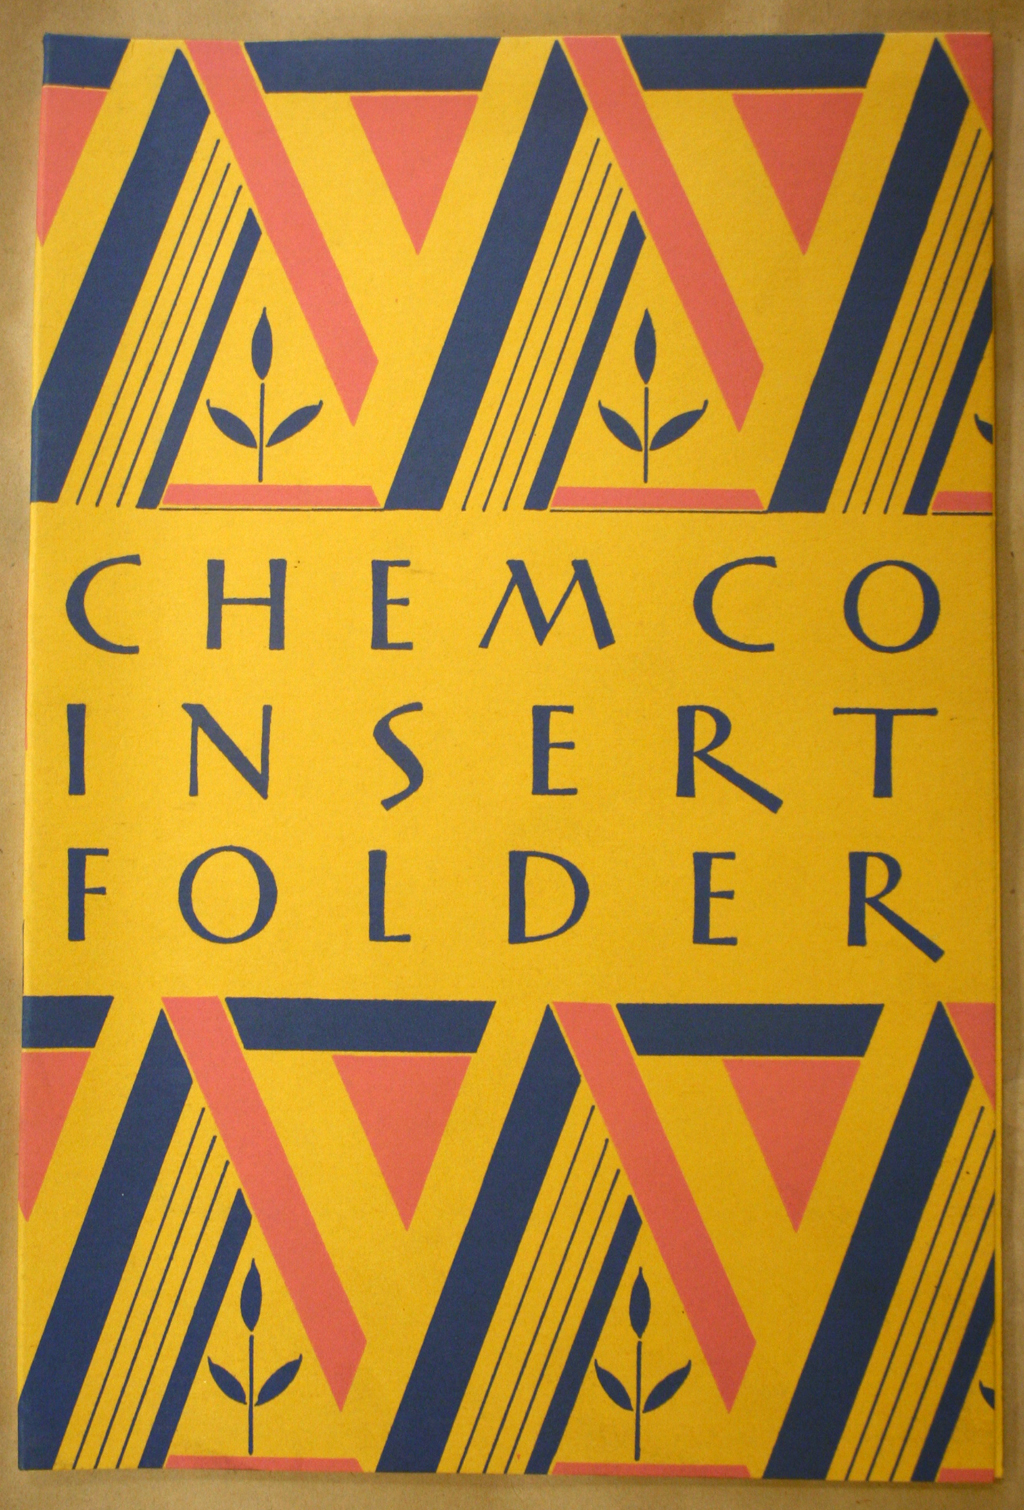 Chemco Insert Folder (c. 1928). Paper company brochure designed and lettered by Walt Harris.